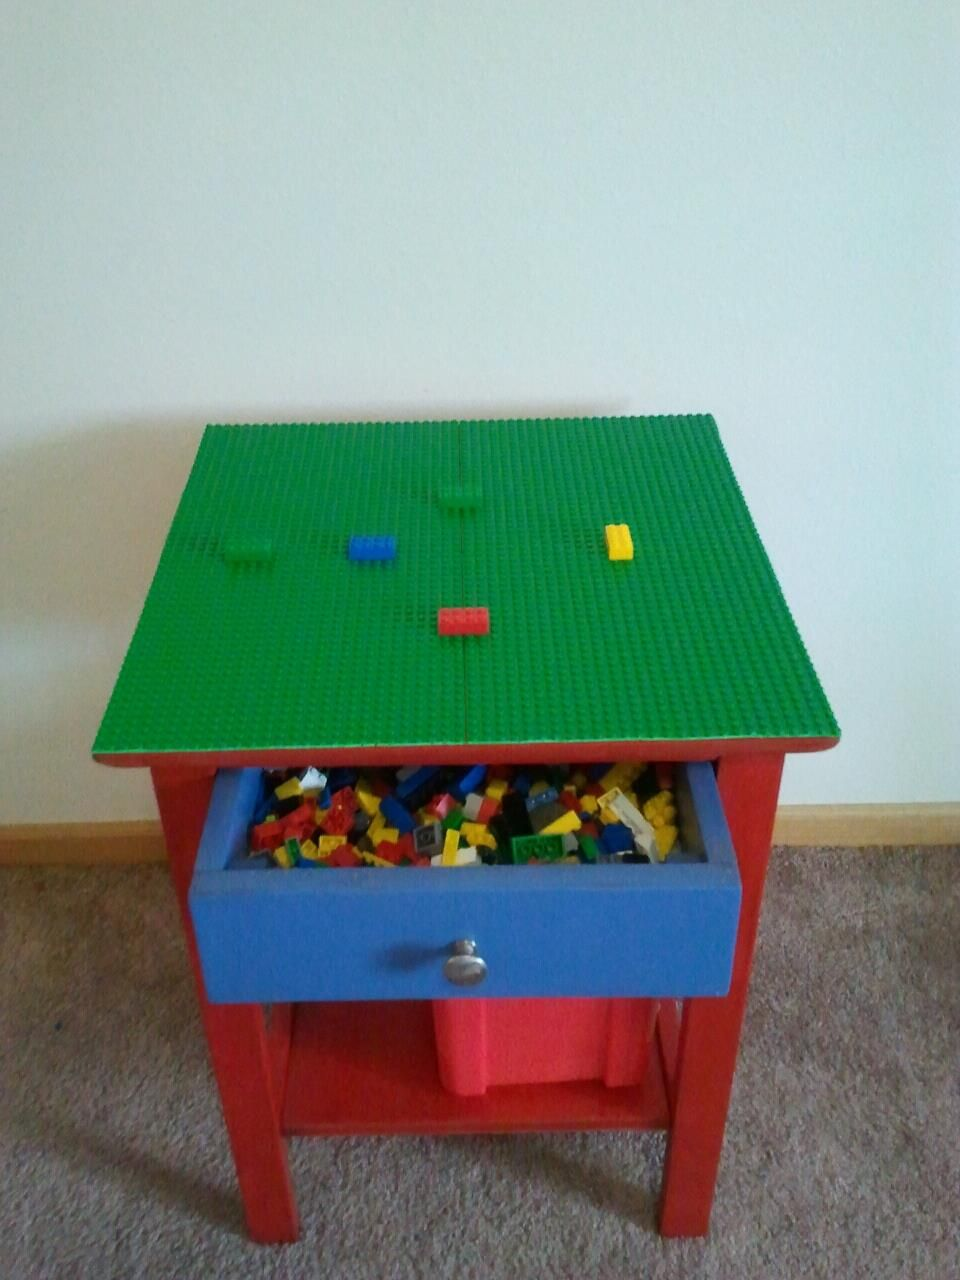 Homemade Lego Table. End Table Sanded And Repainted. Plates Added Top With